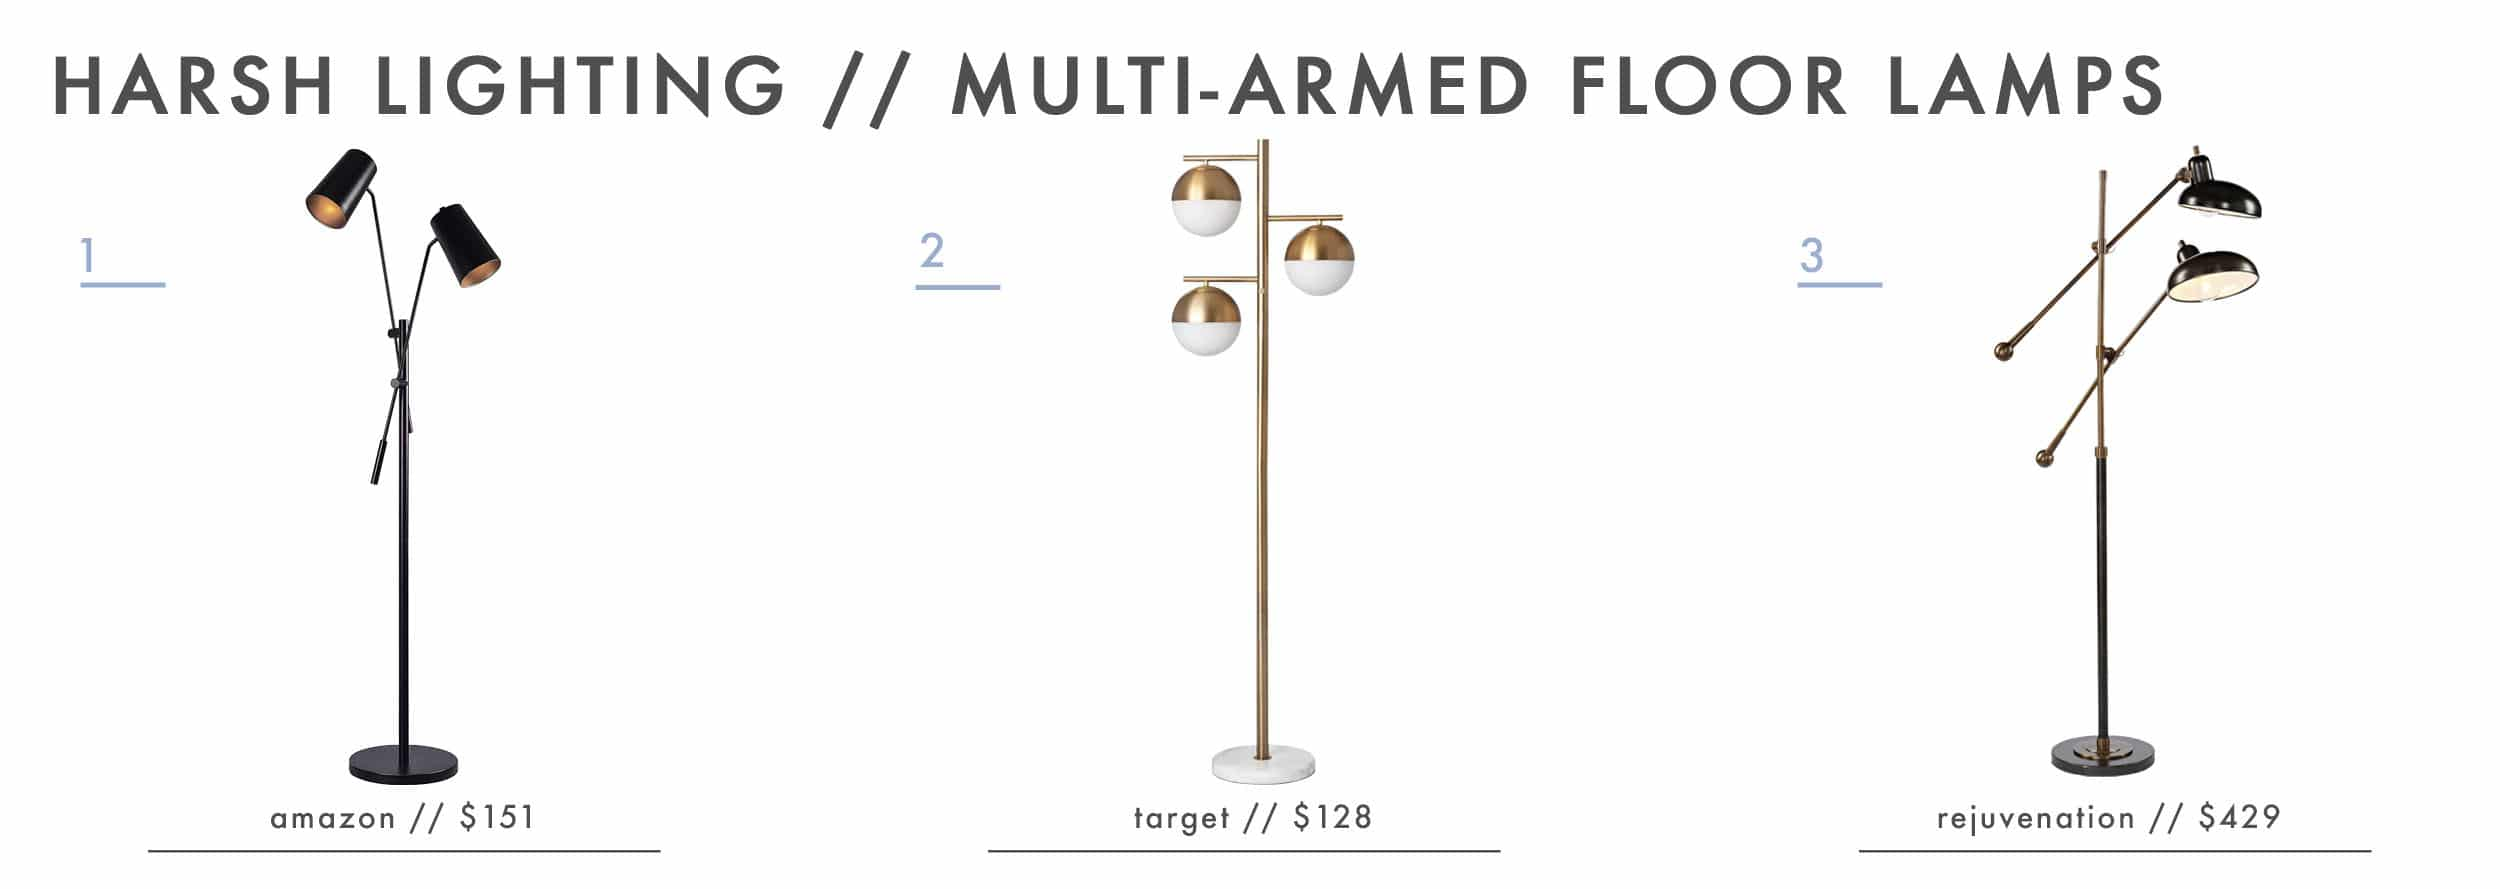 Emily Henderson Design Agony Harsh Lighting Multi Armed Floor Lamps